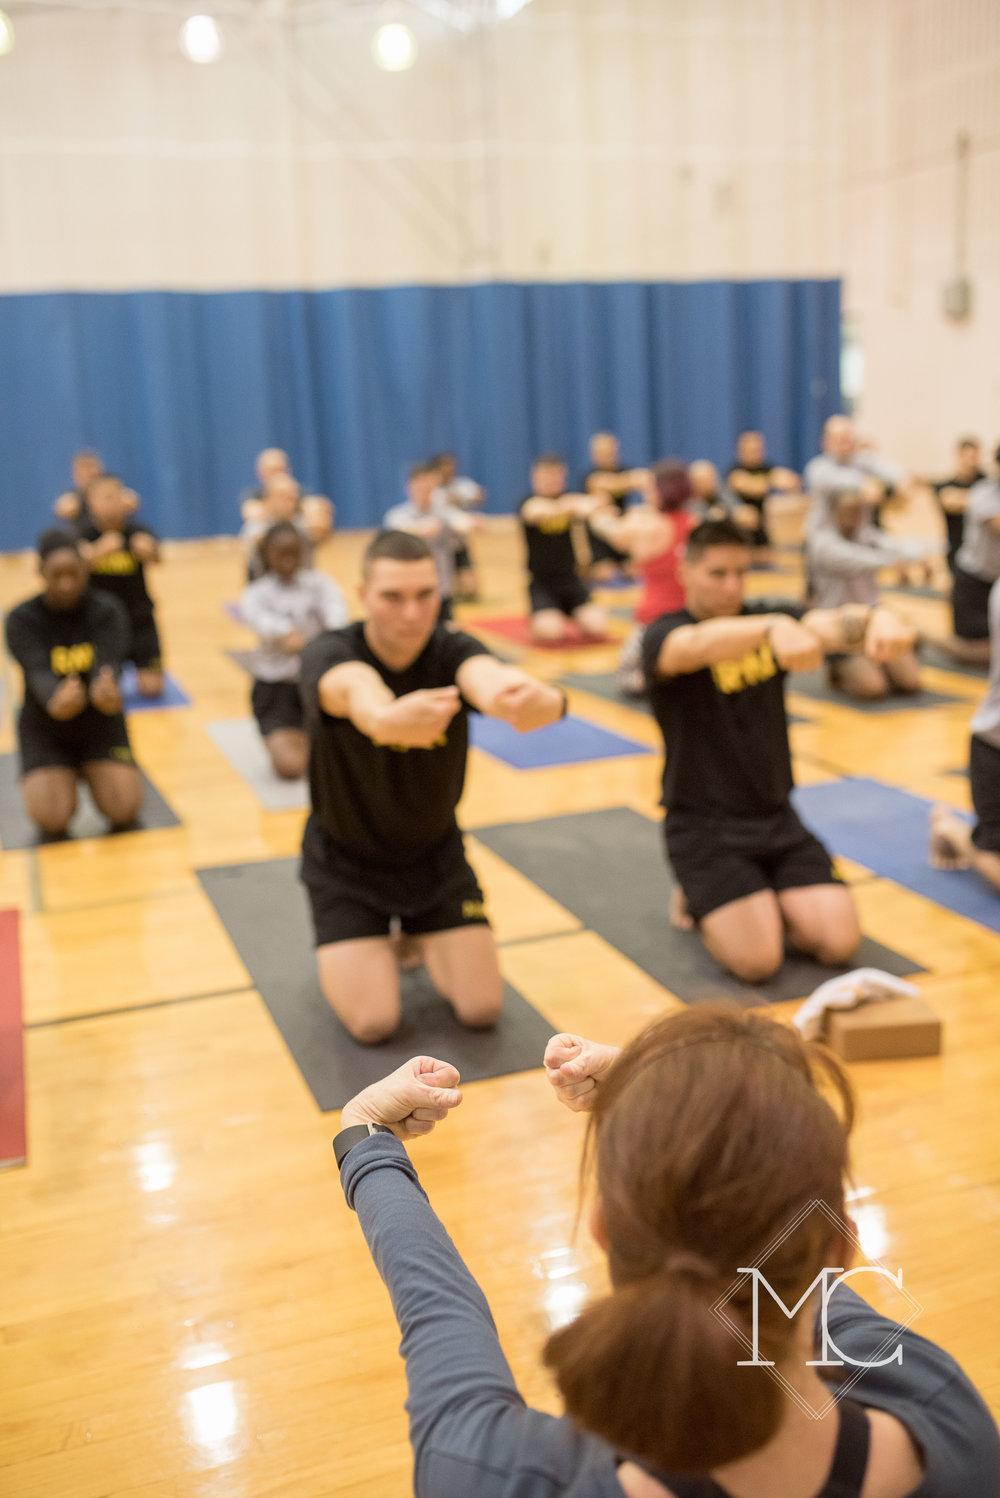 image from nashville yoga nonprofit at ft campbell army base in tennessee